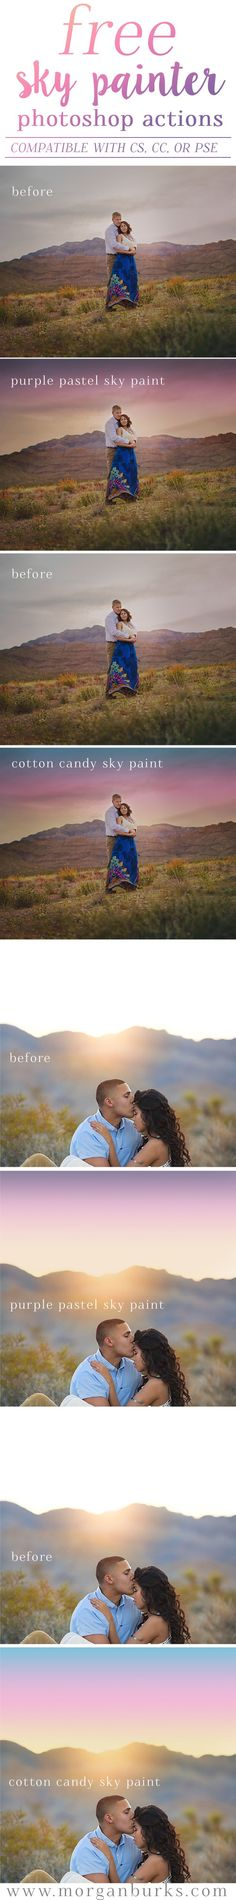 Free sky painter actions!! Add gorgeous sky color with just a swipe of your brush! | Find more at www.morganburks.com